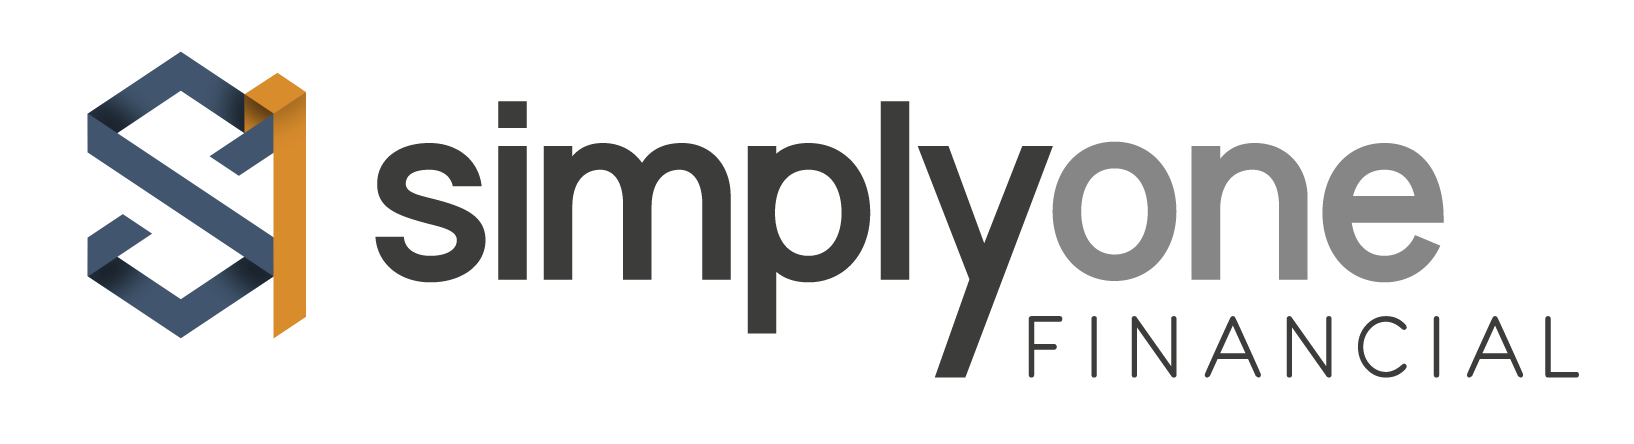 Simply 1 Financial Services Ltd Logo